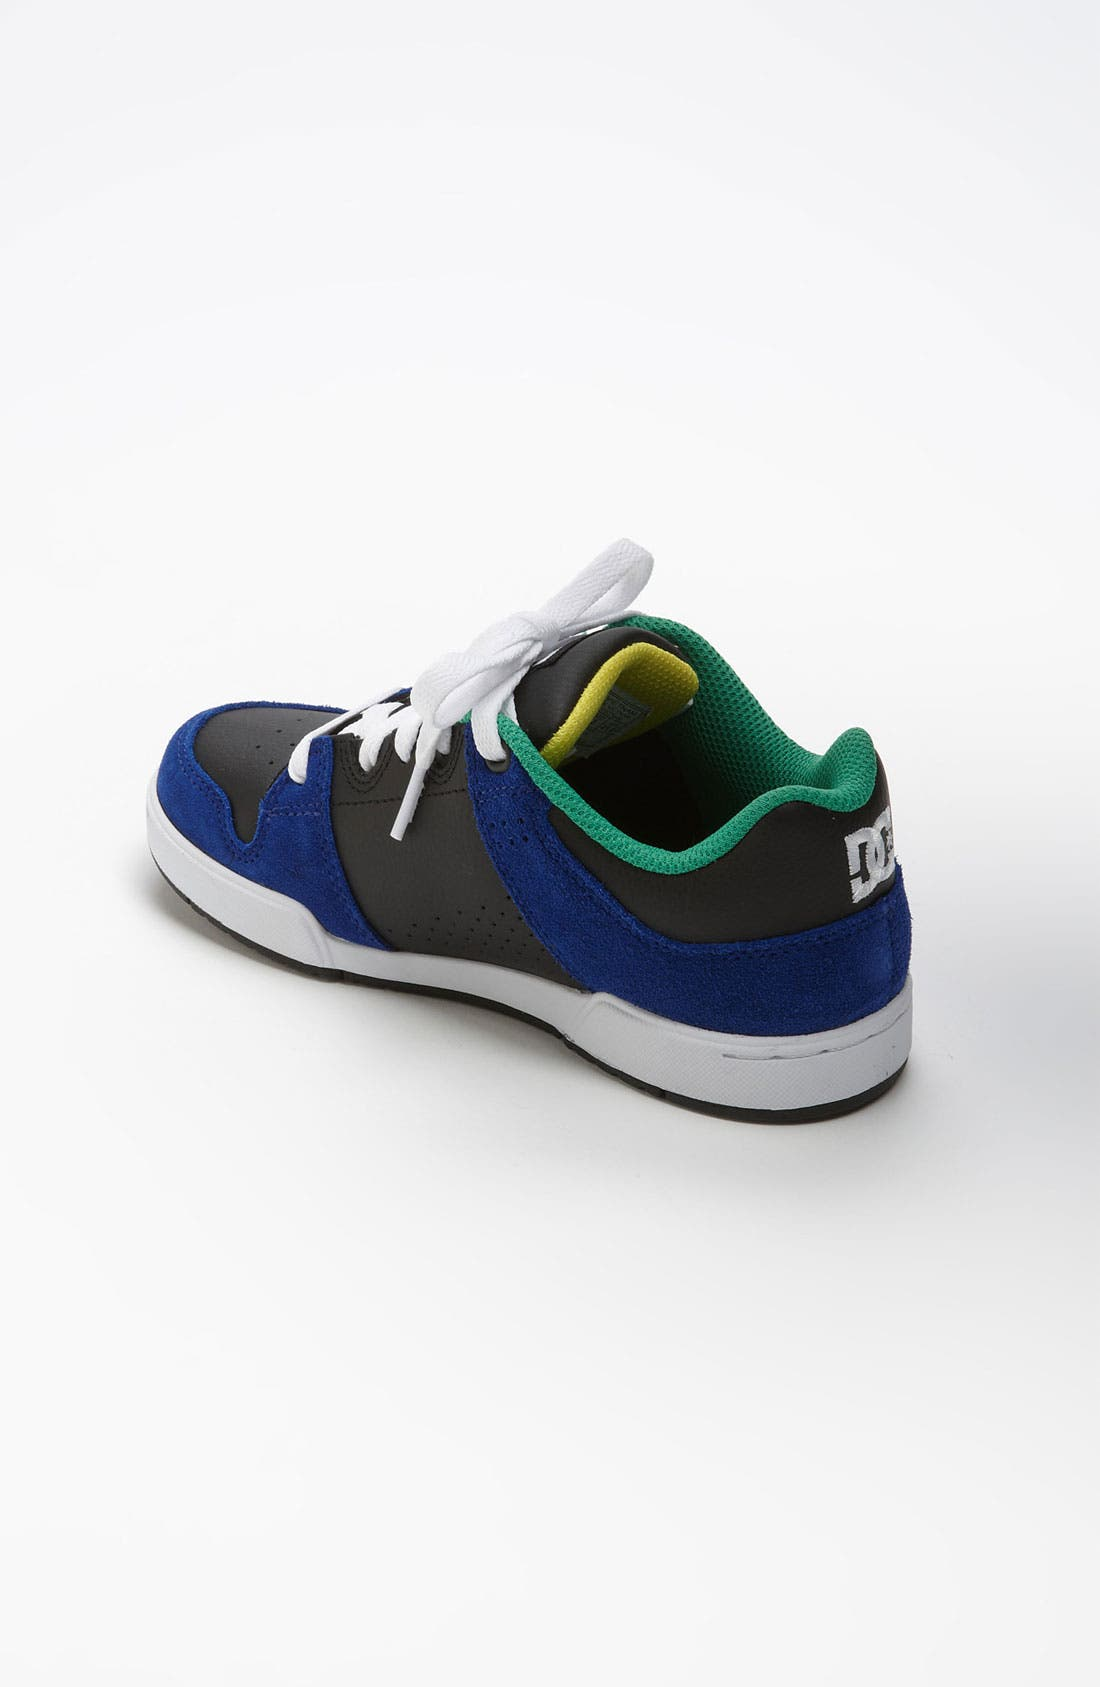 Alternate Image 2  - DC Shoes 'Turbo 2' Sneaker (Toddler, Little Kid & Big Kid)